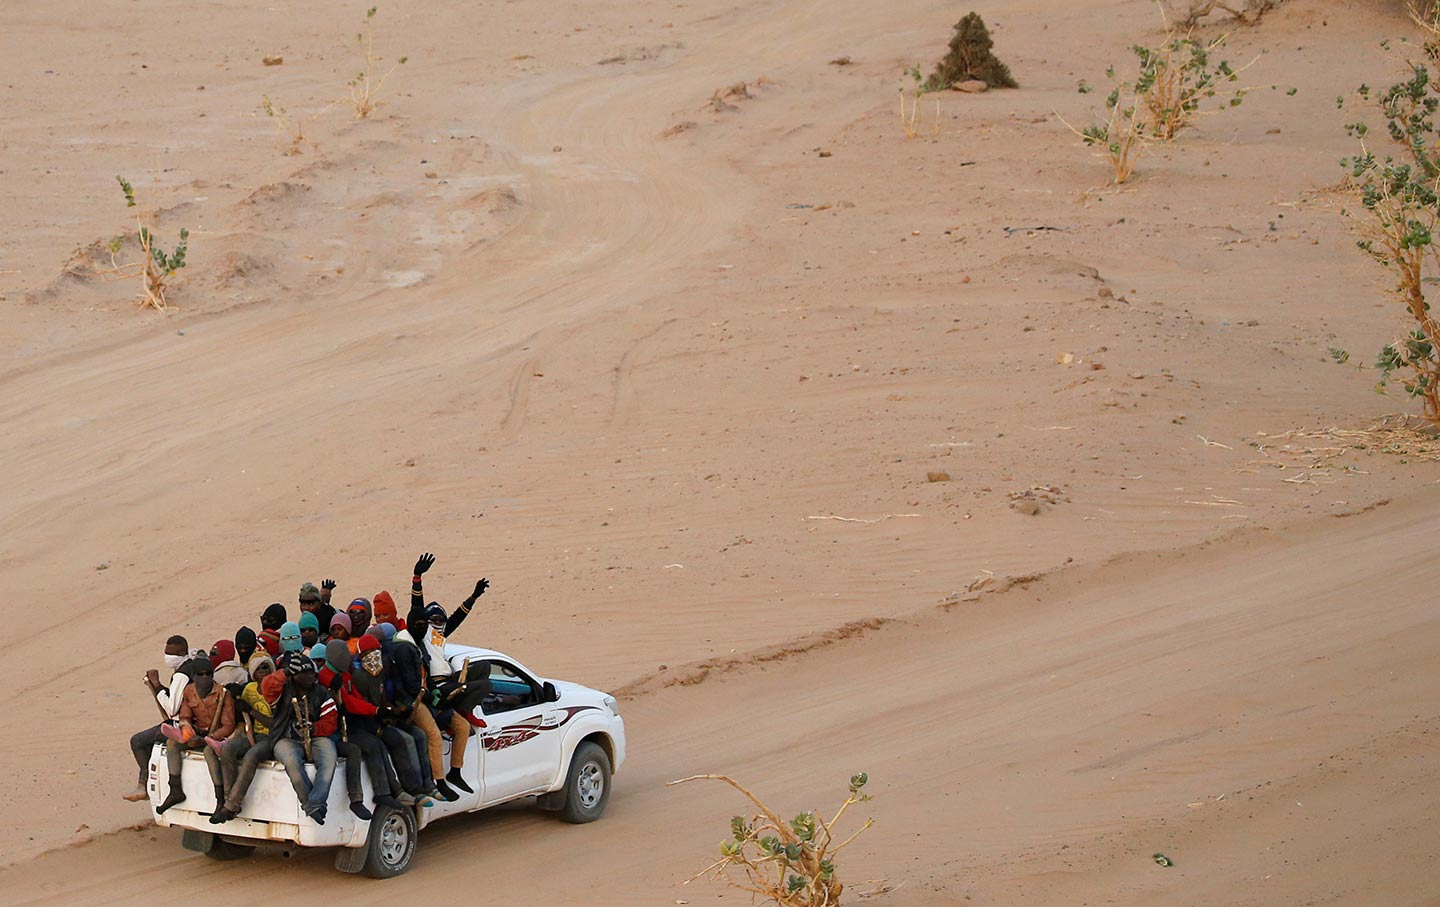 Migrants crossing through Agadez